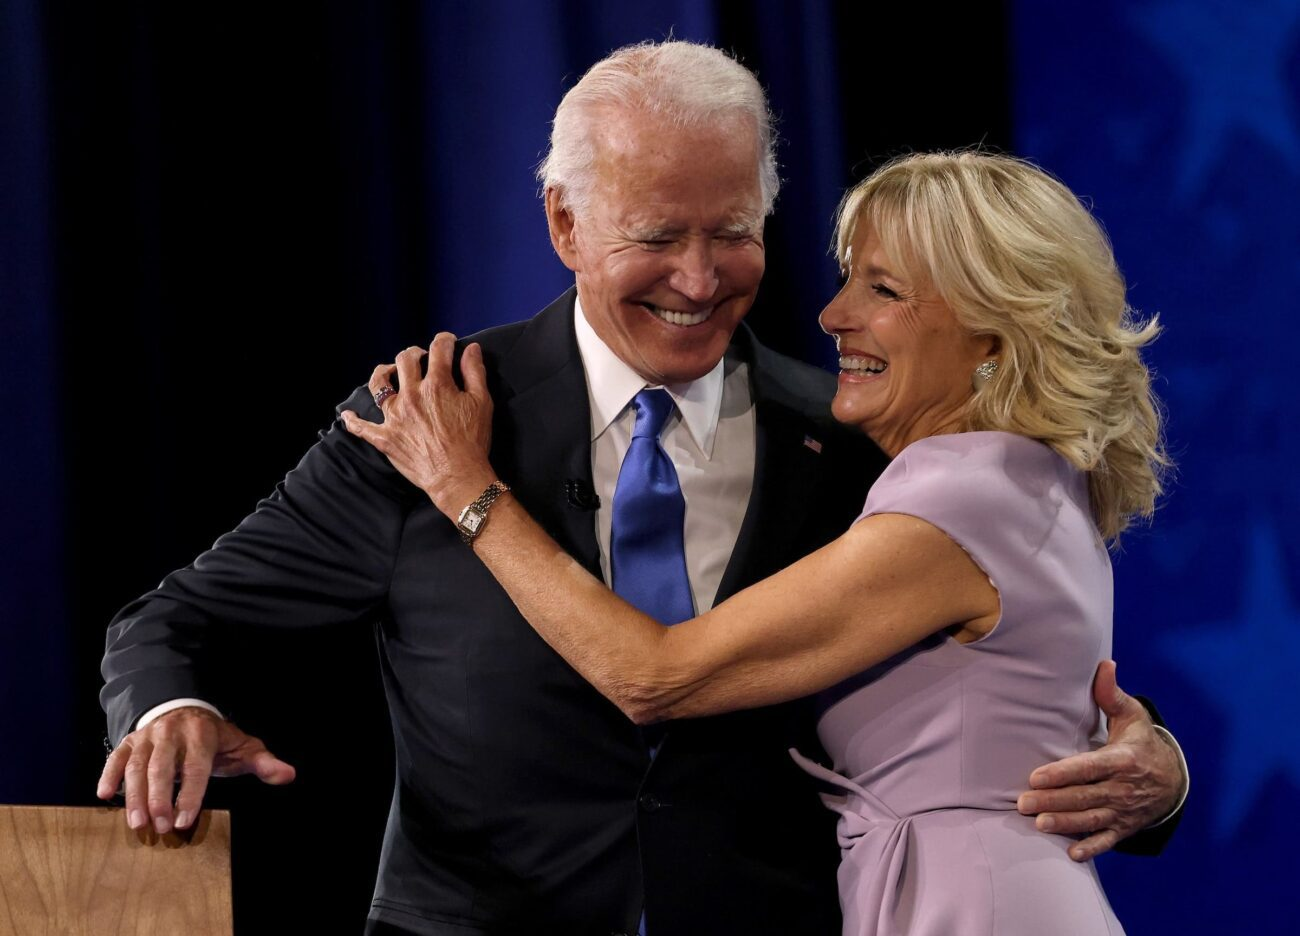 Jill Biden has become the only first lady to work a full-time job outside of the White House. Read how she returns to her lifelong passion for education.